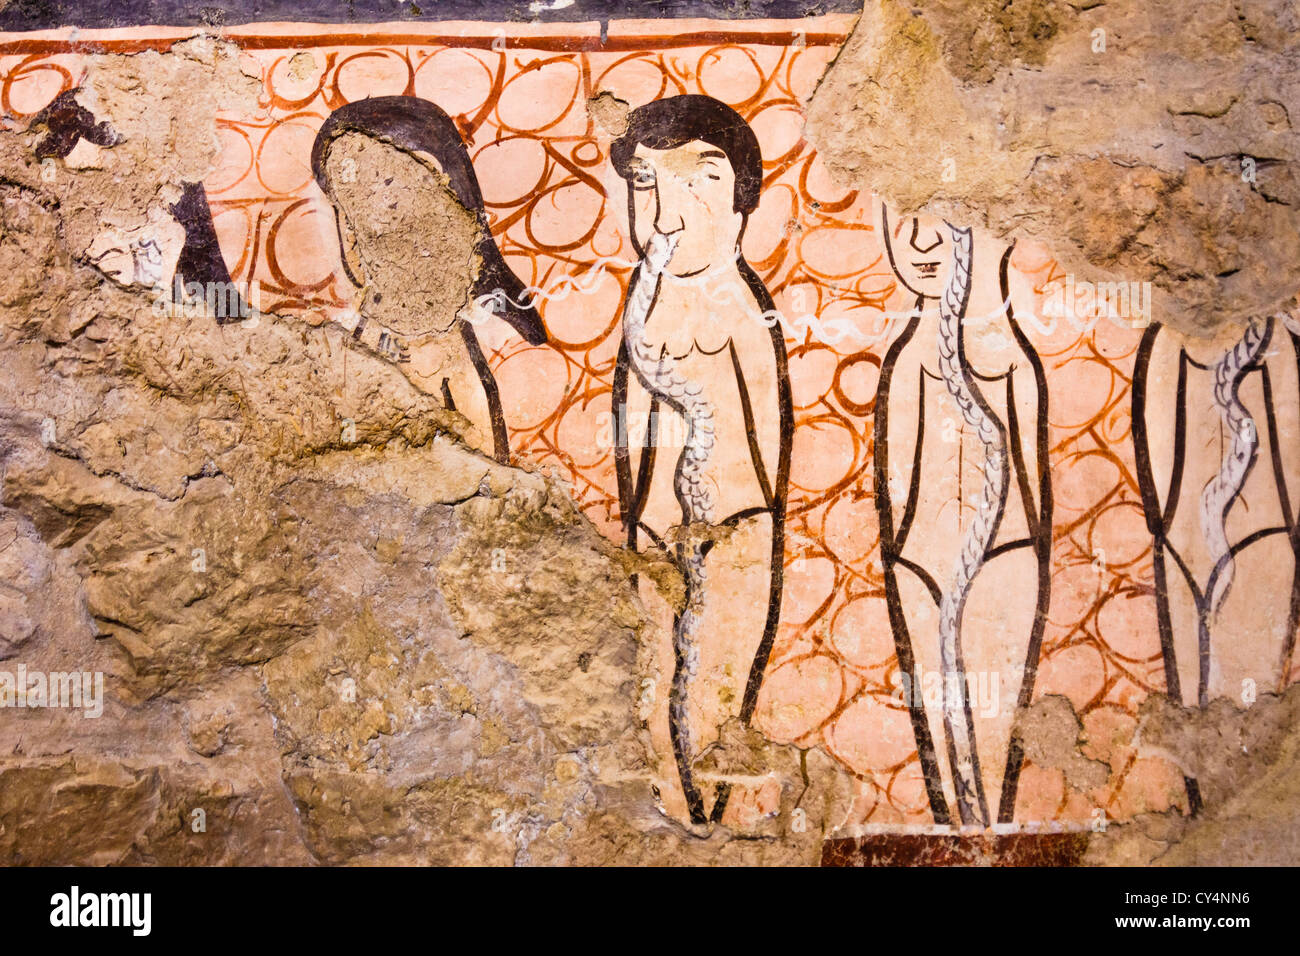 Frescoes at the church of Mar Musa Monastery, Syria - Stock Image